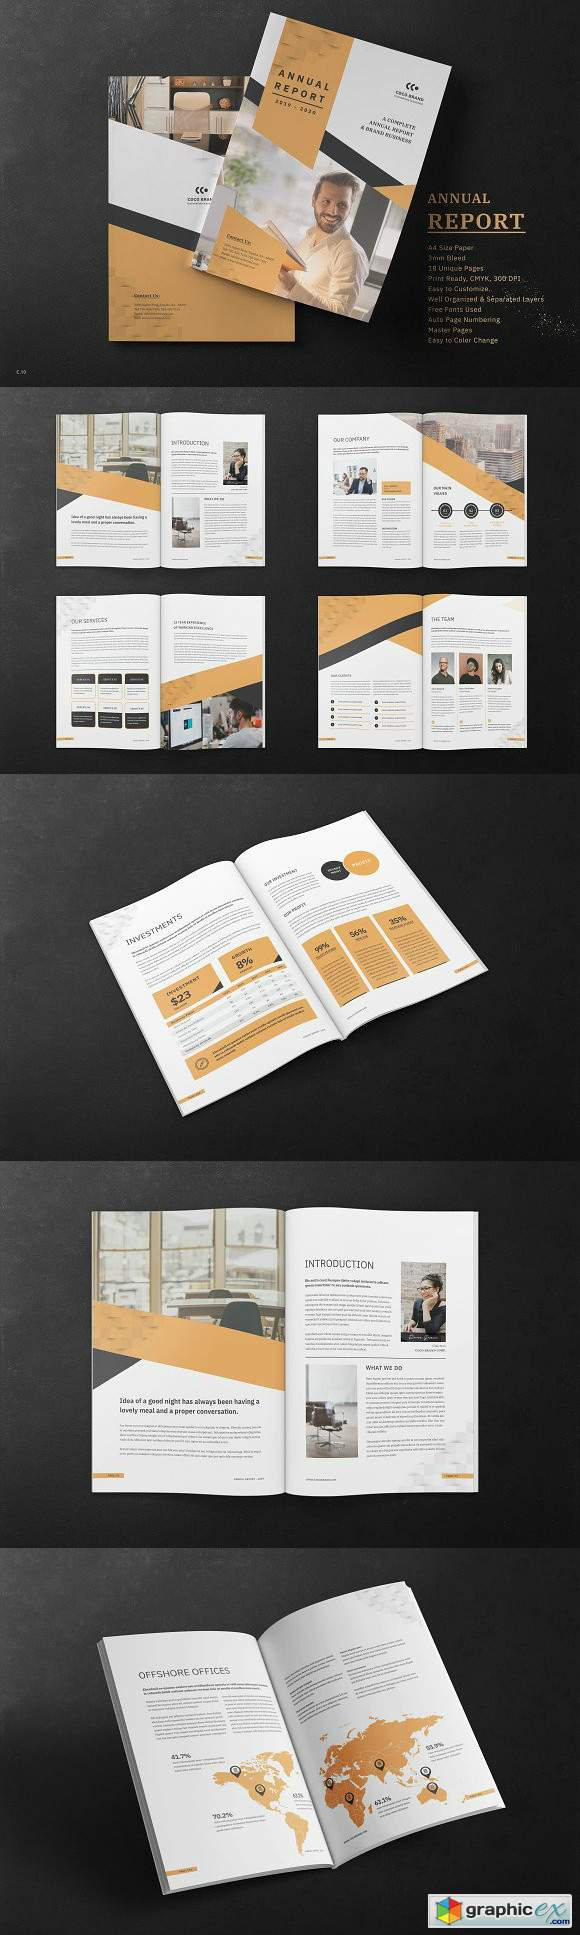 Annual Report Template 3078063